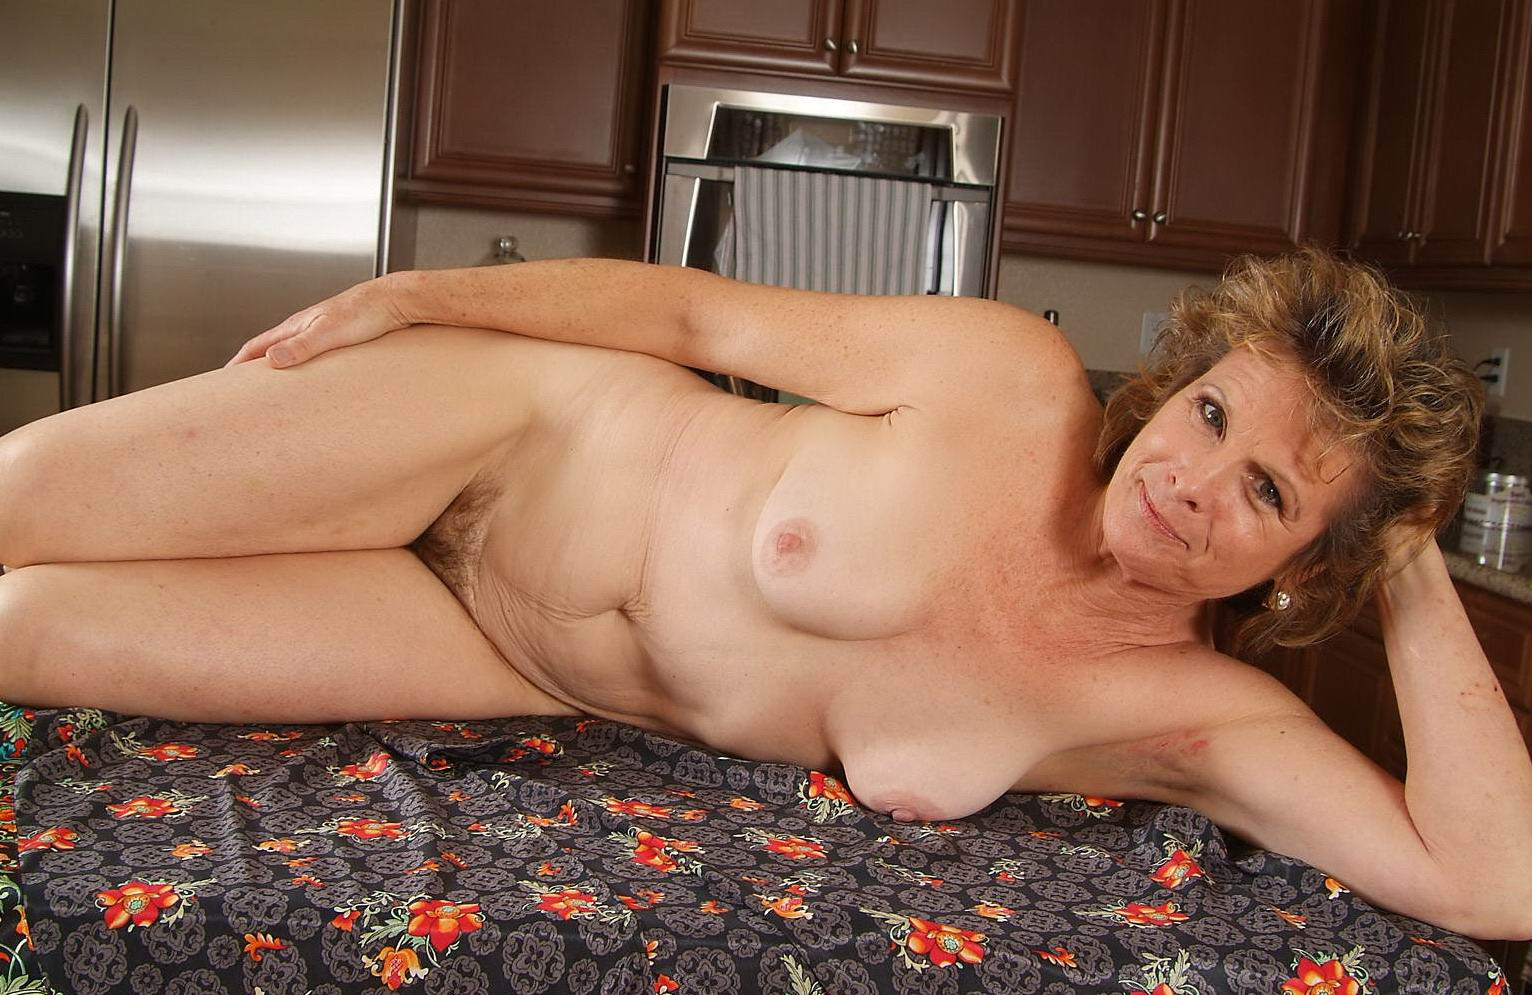 Milf cougar smoking